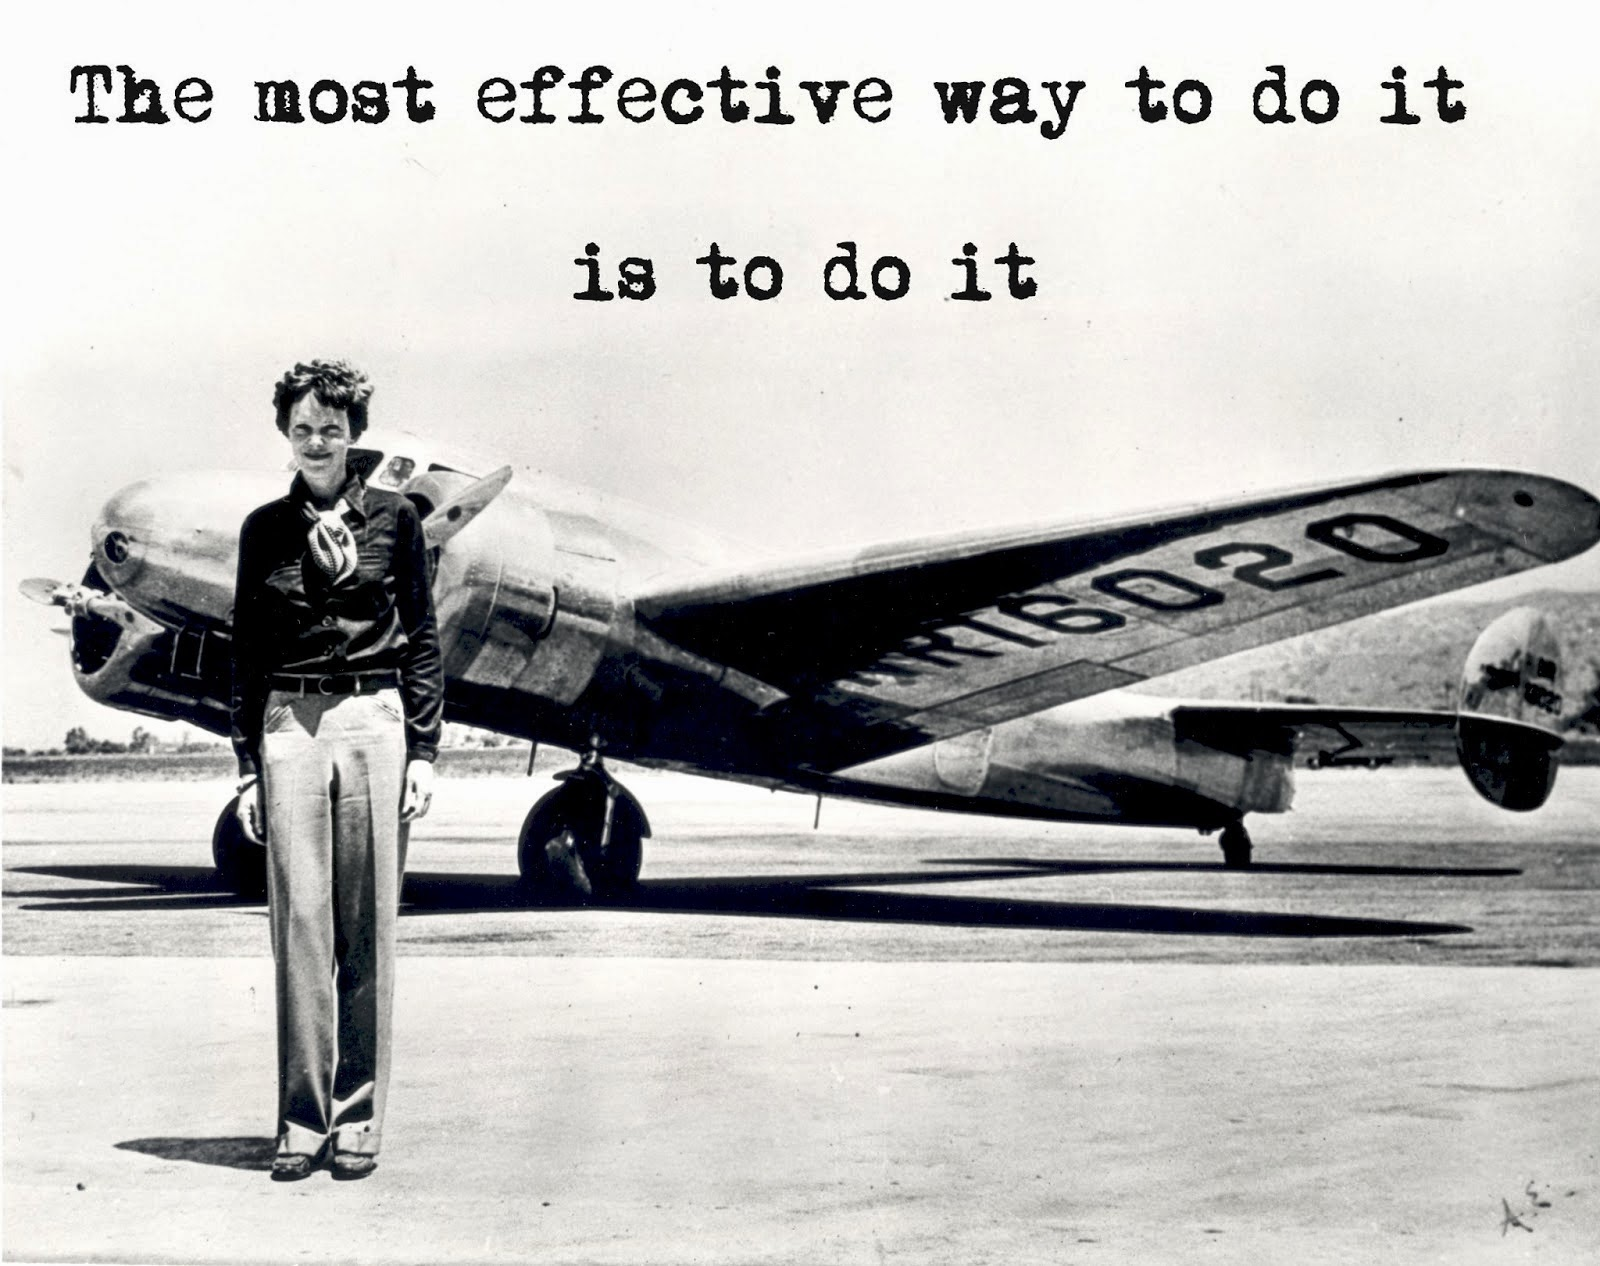 Amelia Earhart_The most effective way to do it is to do it